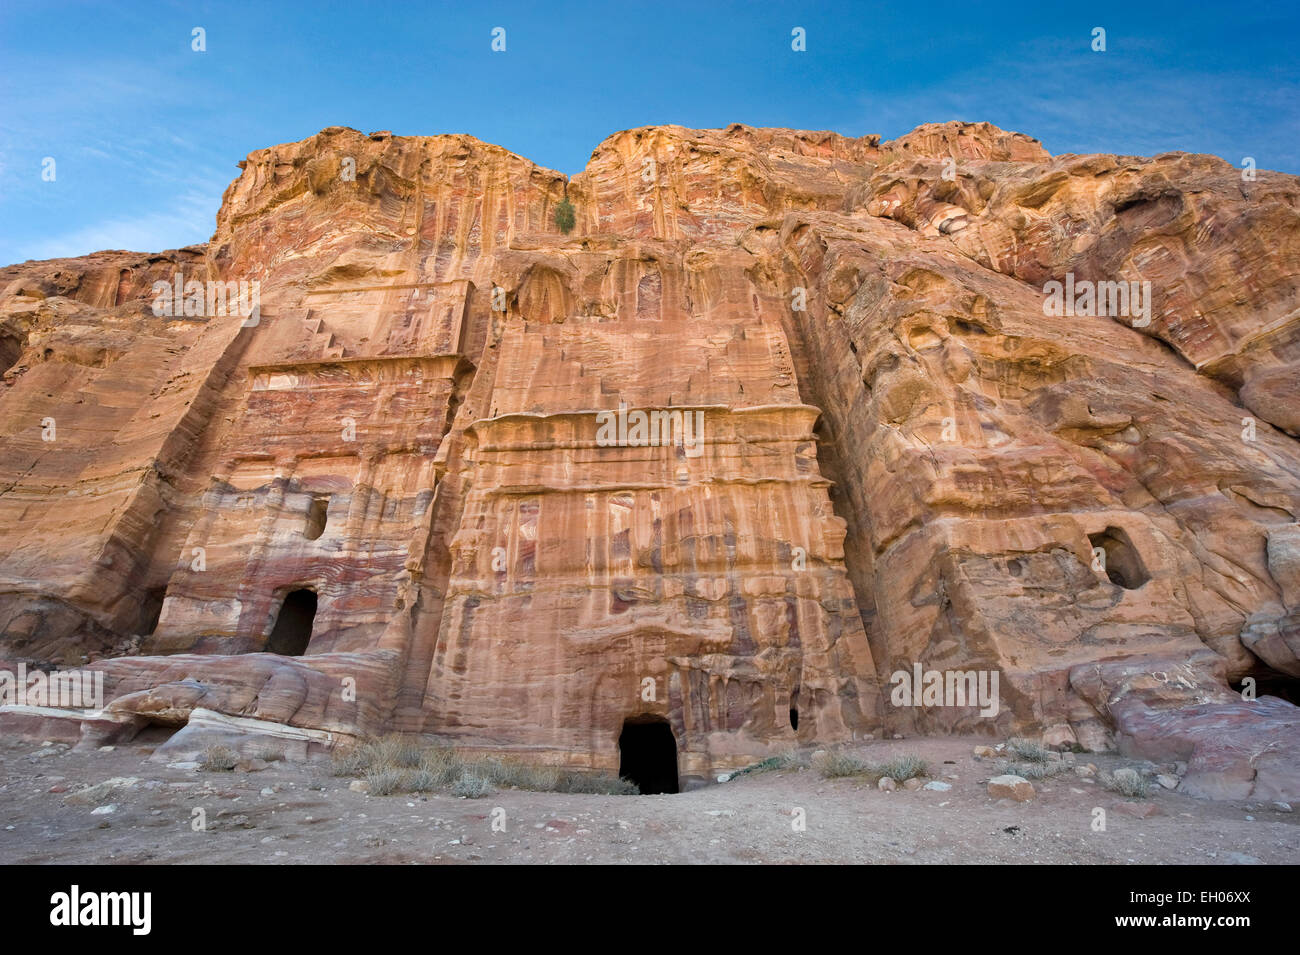 Three of the royal tombs in Petra in Jordan - Stock Image